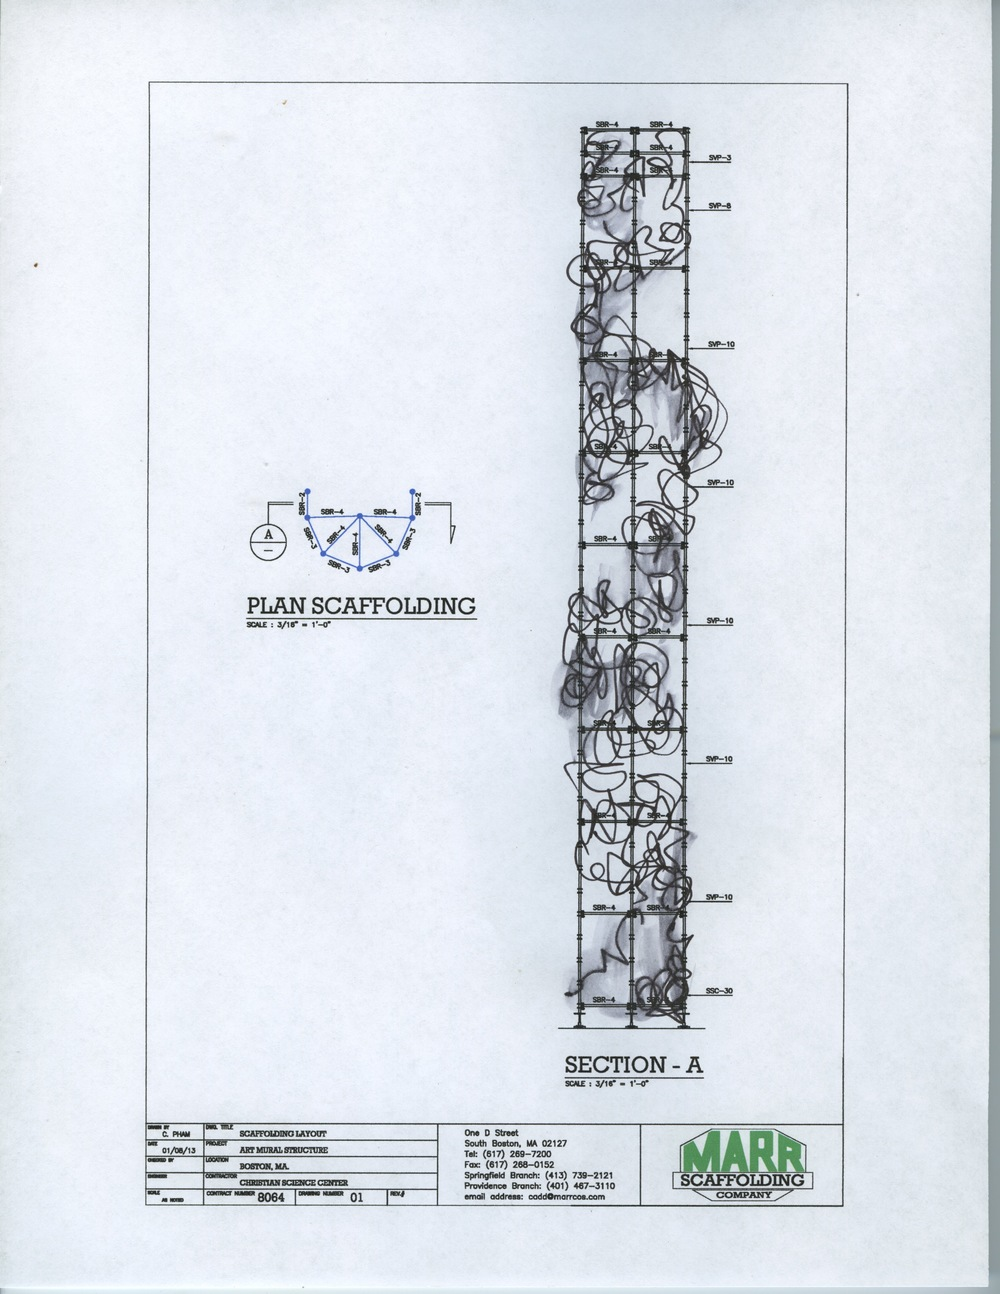 First sketch for  The Lighthouse  over engineering plans by Marr Scaffolding